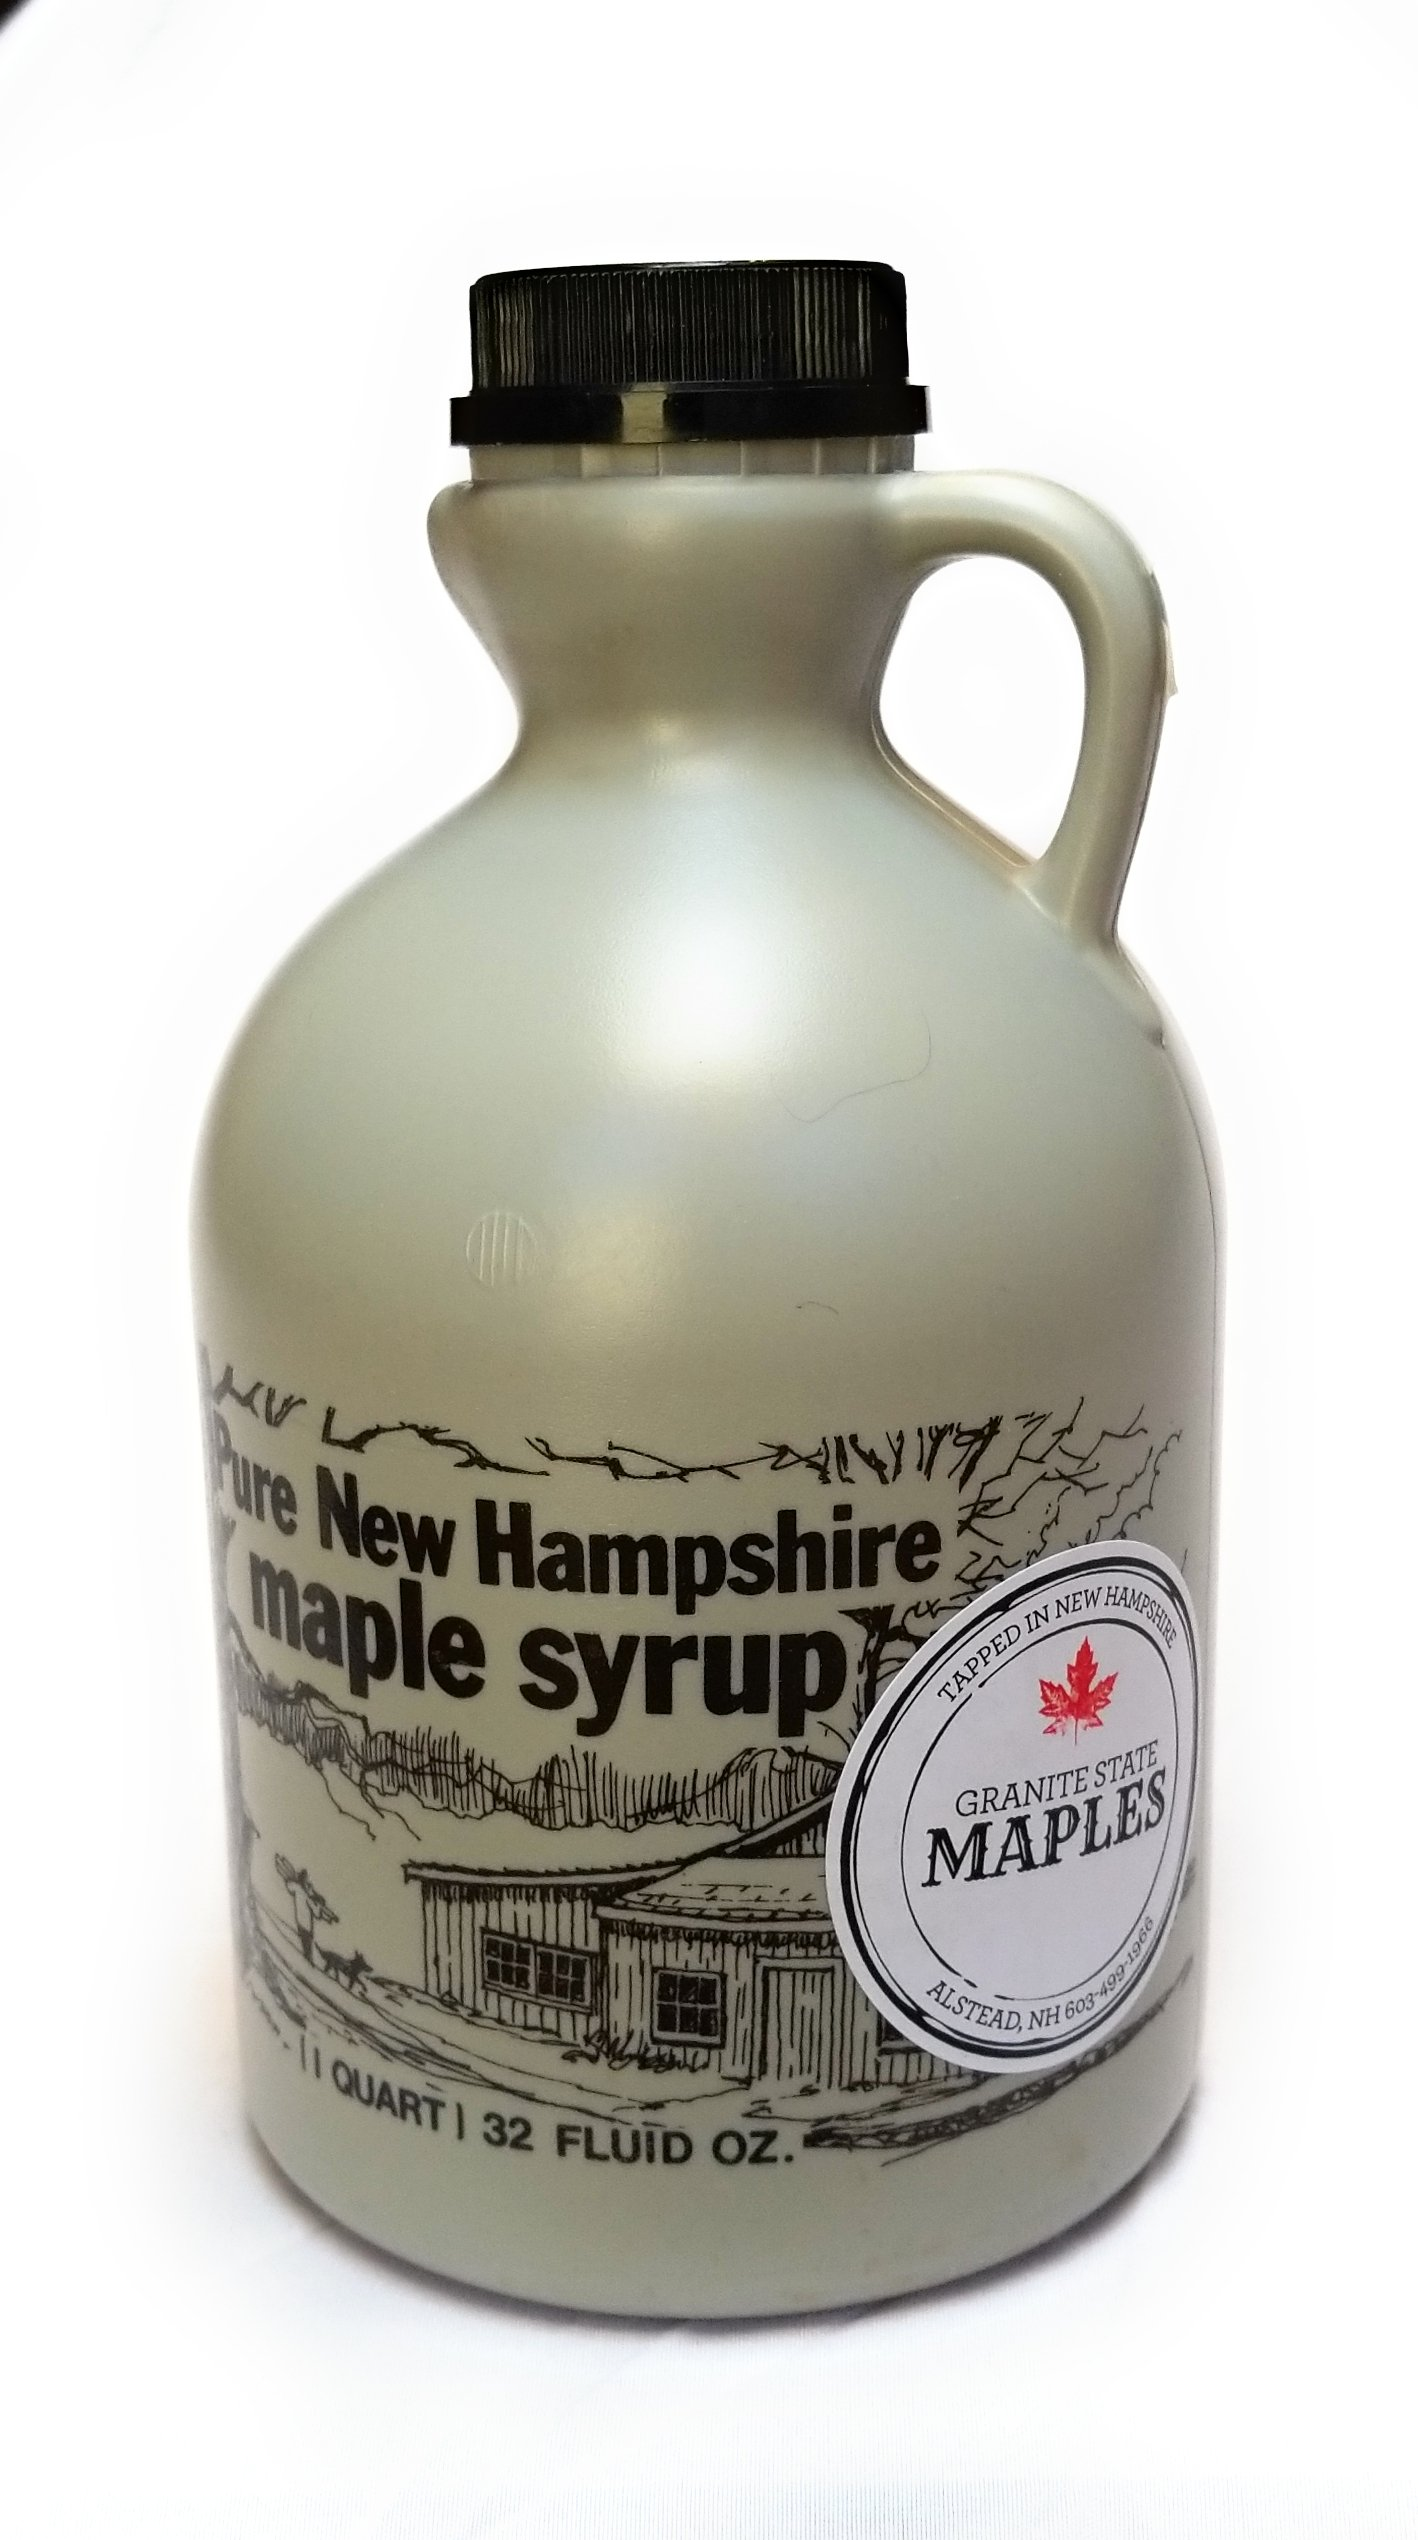 Granite State Maples 32Fl Oz.(1 Quart) Pure New Hampshire Maple Syrup, Grade A